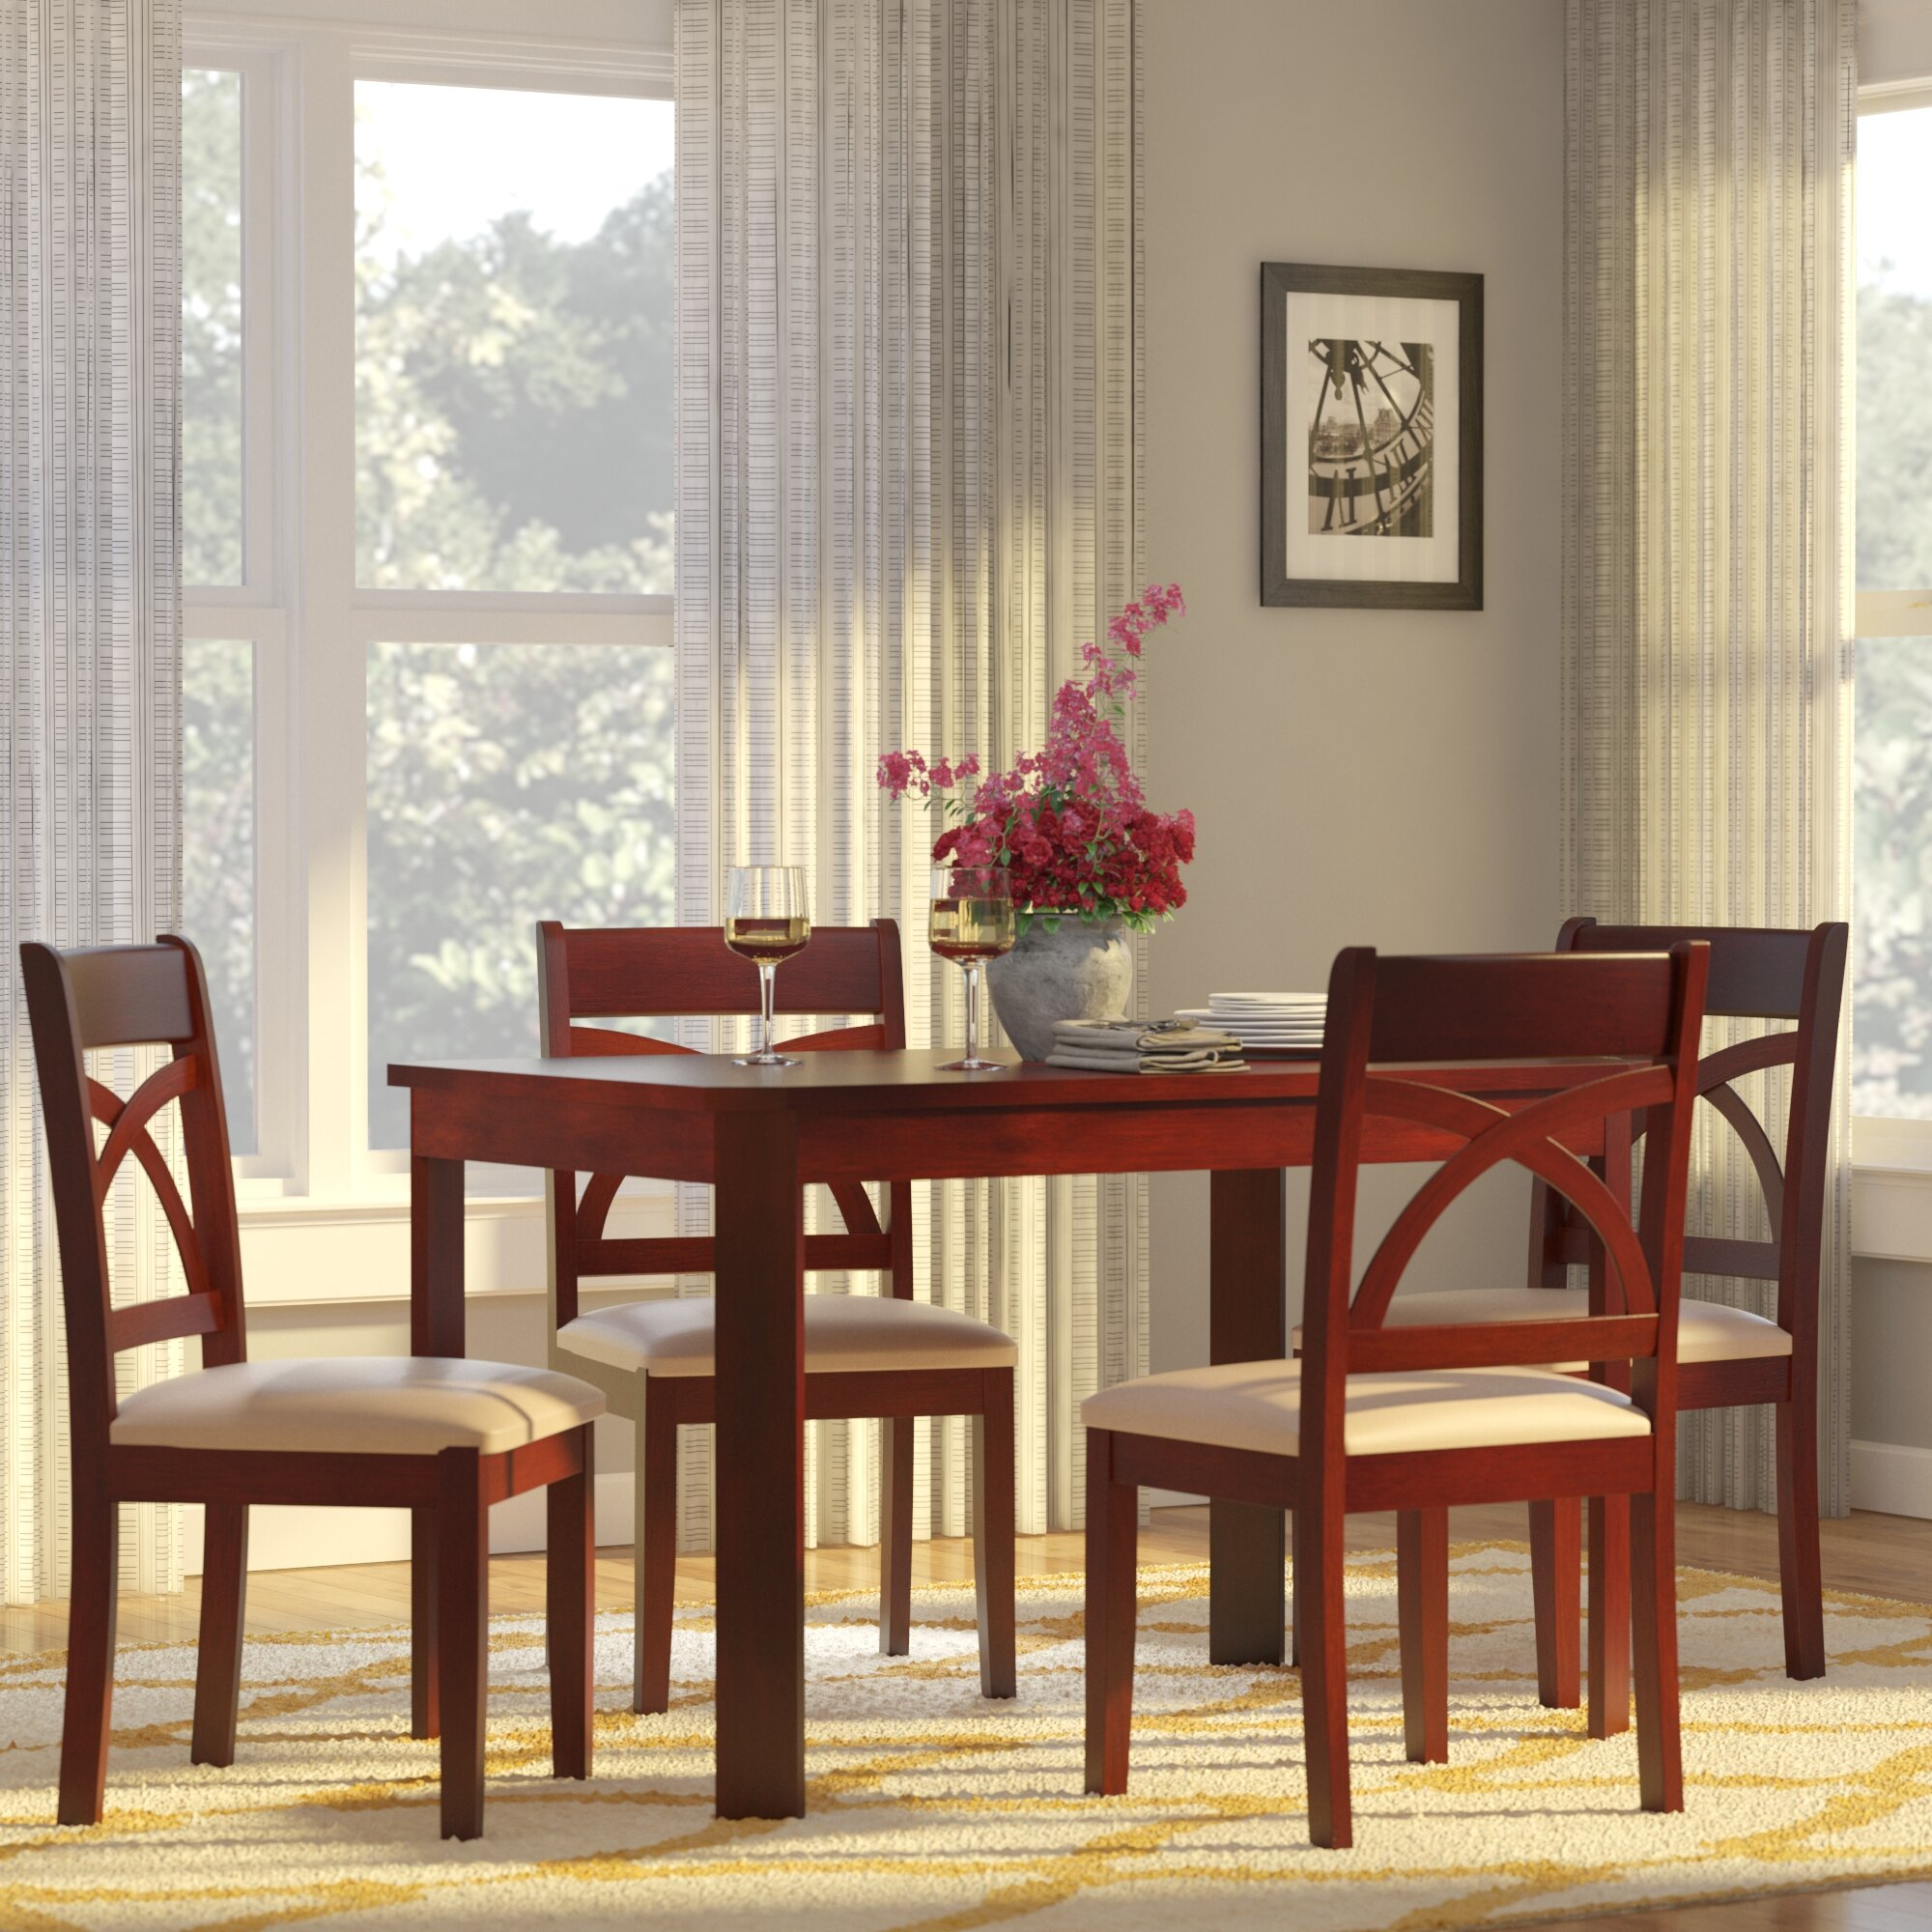 & Andover Mills Abigail 5 Piece Dining Set u0026 Reviews | Wayfair